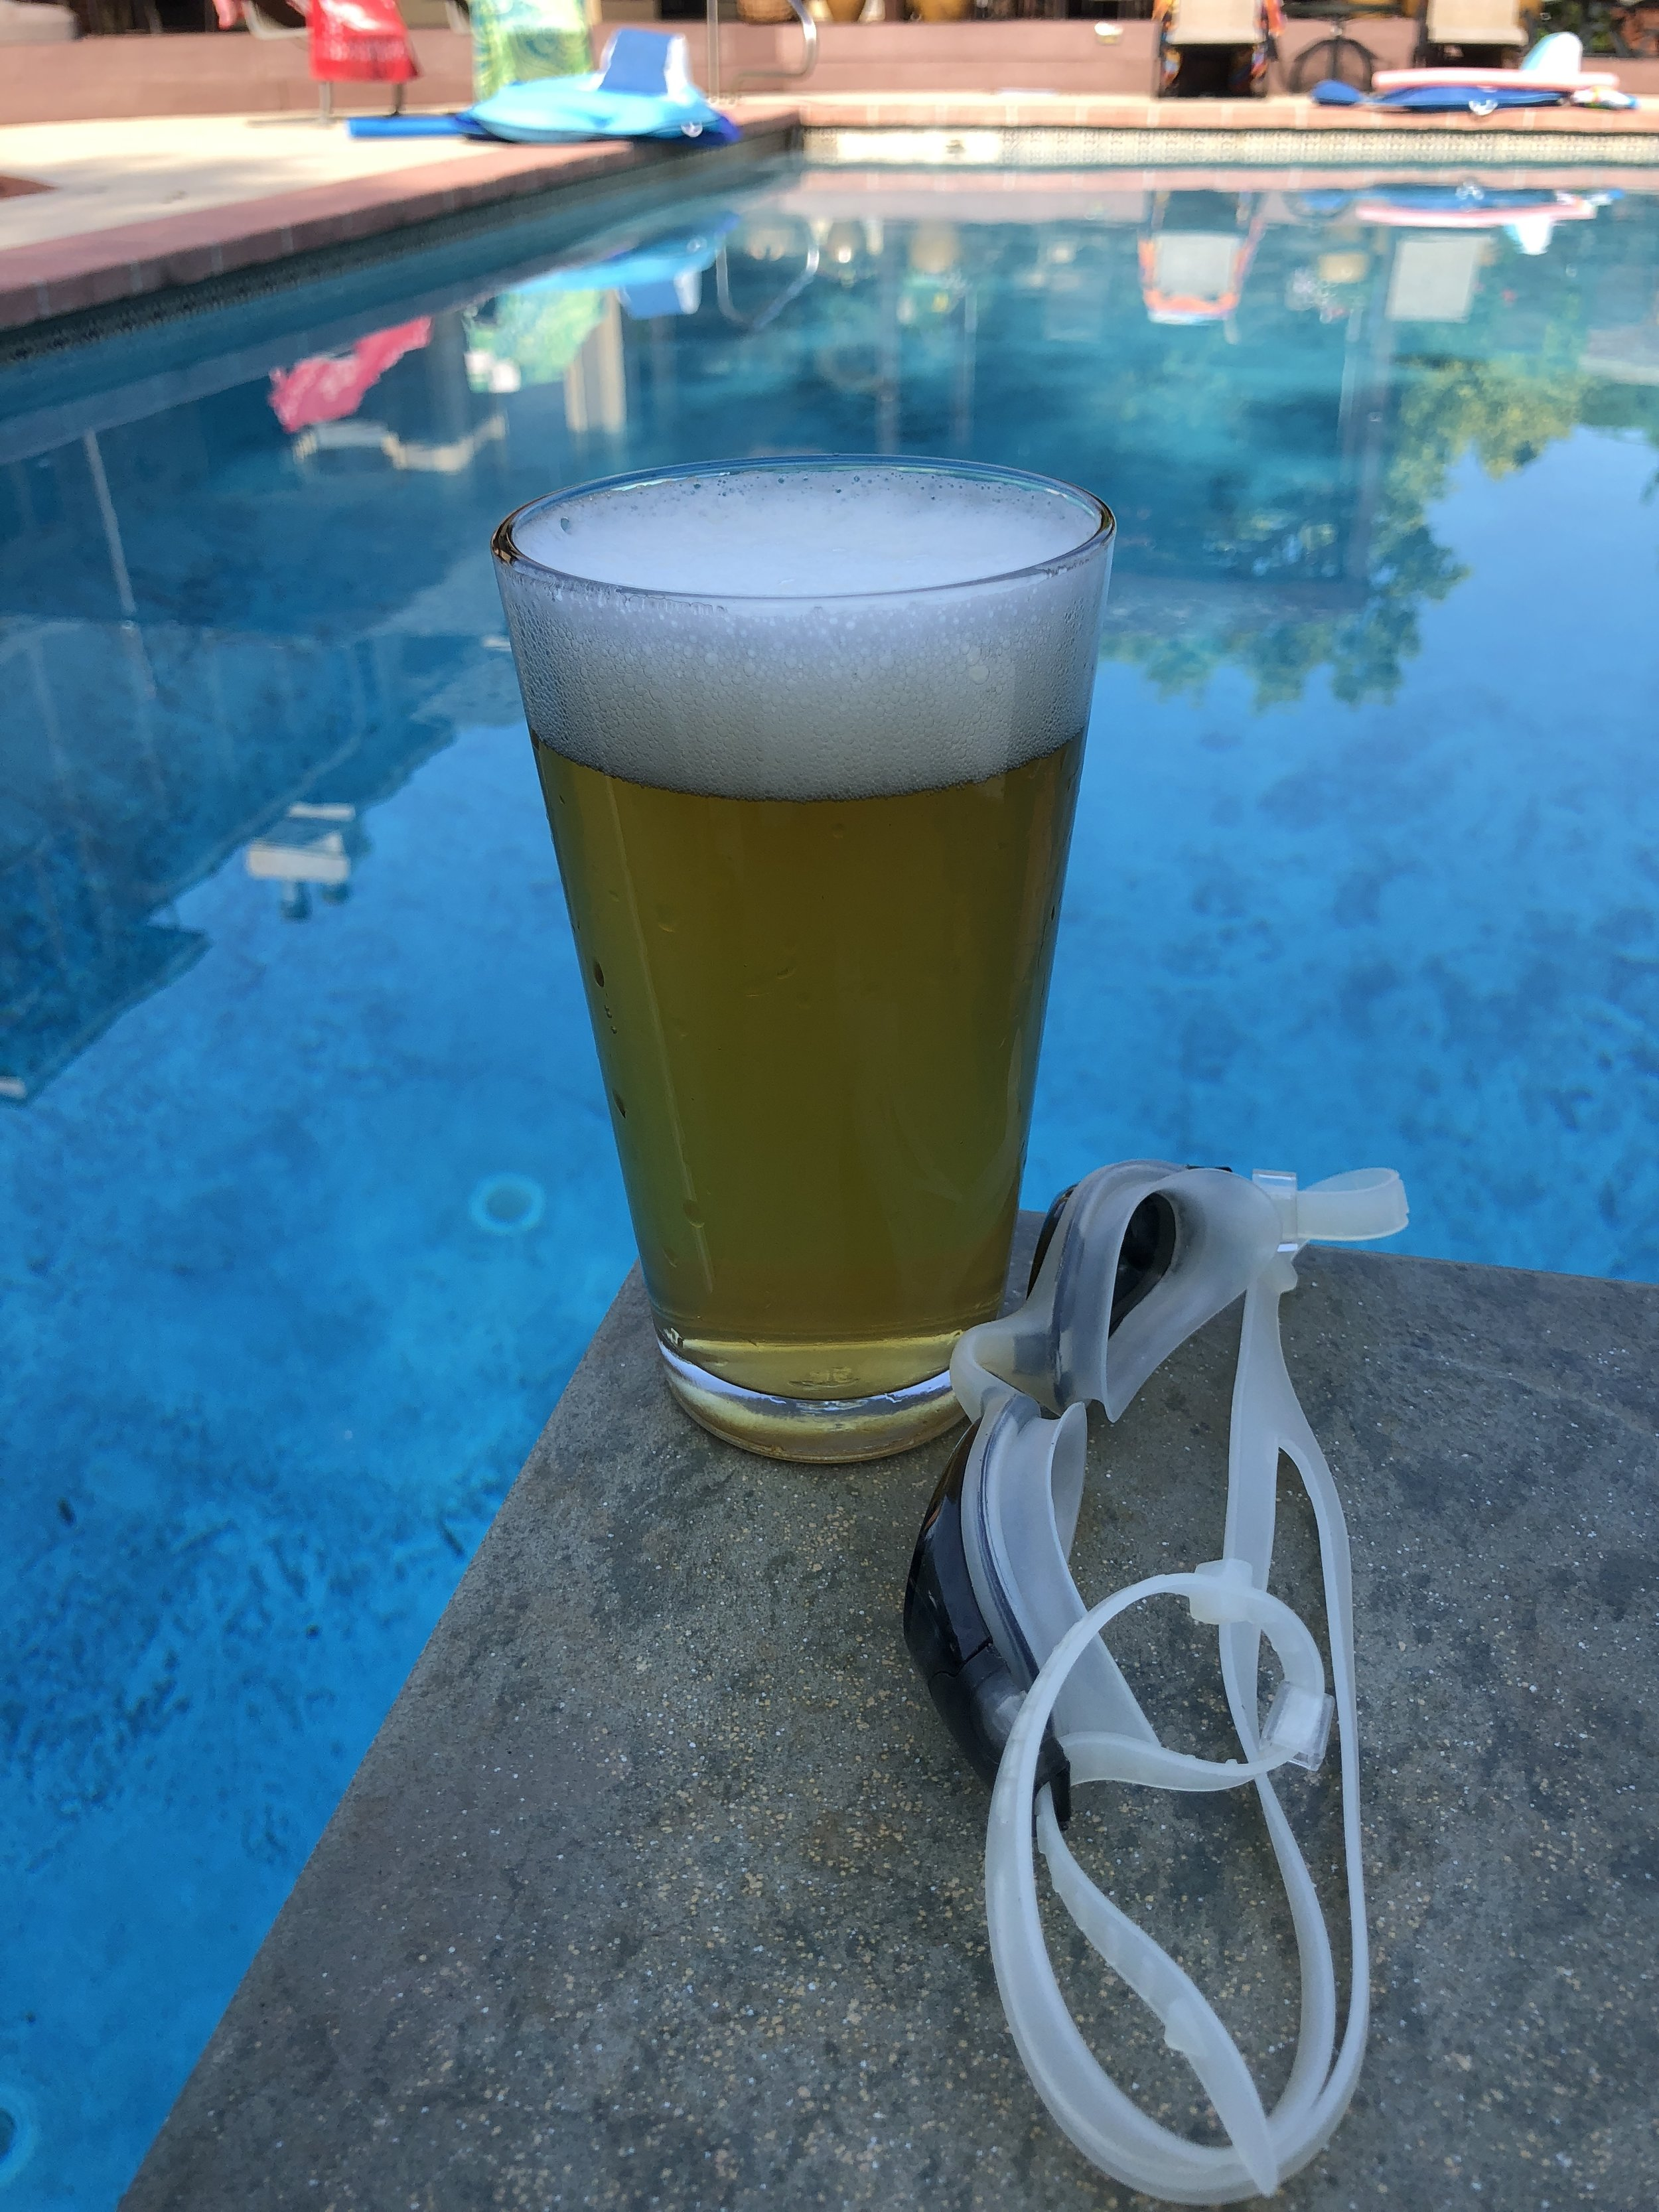 Spring Board (American Light) - ABV:4.2 IBU:11 SRM:4Springboard is a Blonde Ale with a light malty sweetness and a clean finish. The delicate, floral attributes of the old-world German hops create a perfect summer thirst quencher.